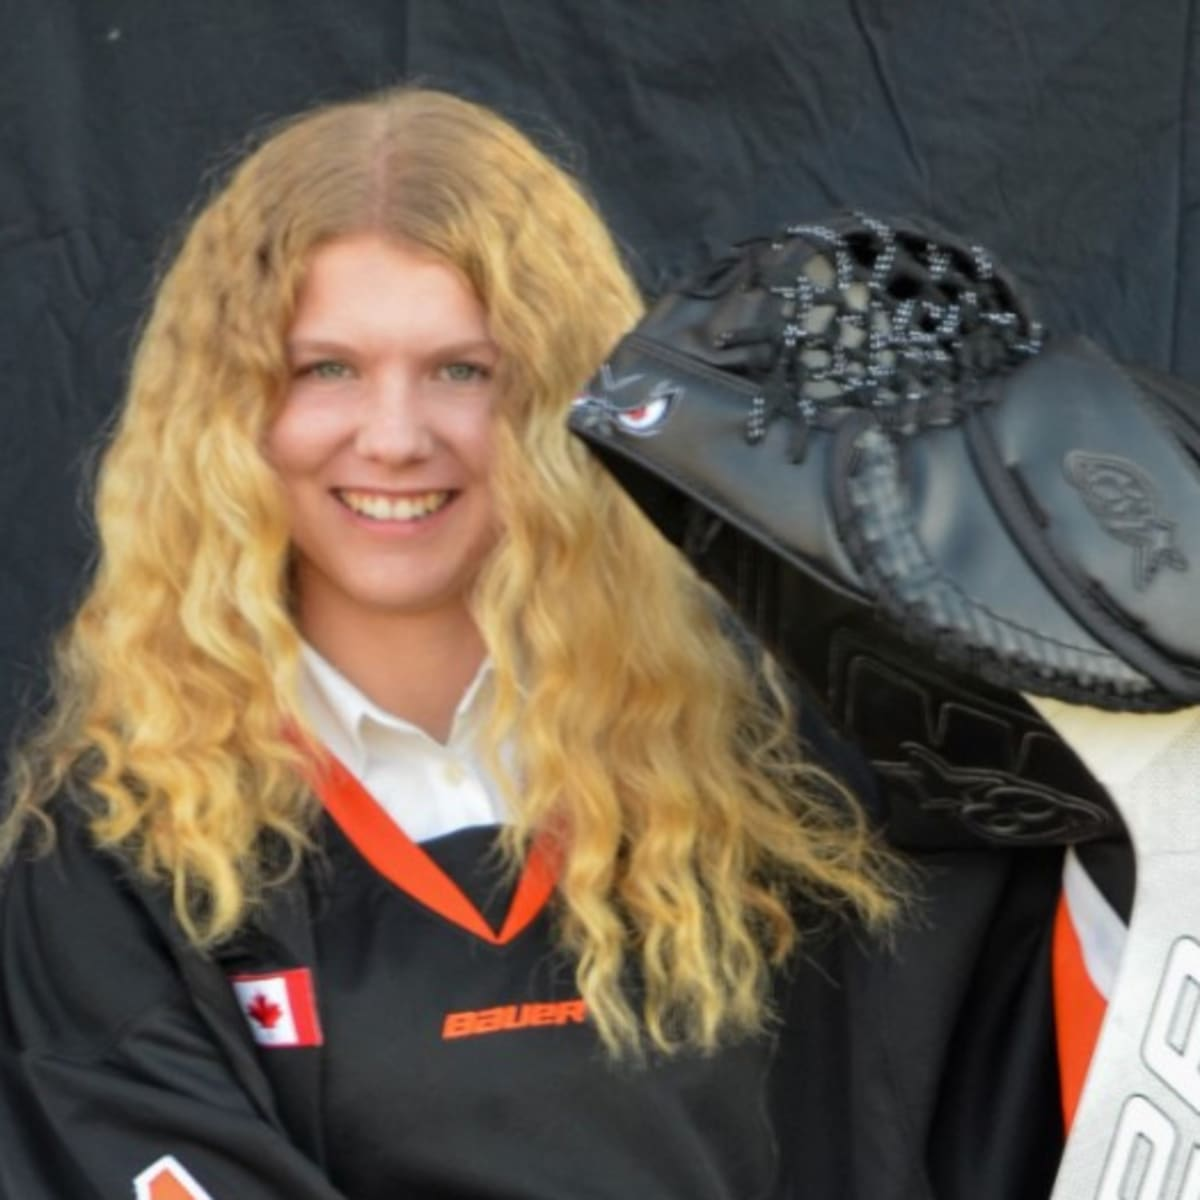 16-Year-Old Goali Taya Currie Becomes First Female Player Drafted in Ontario Hockey League